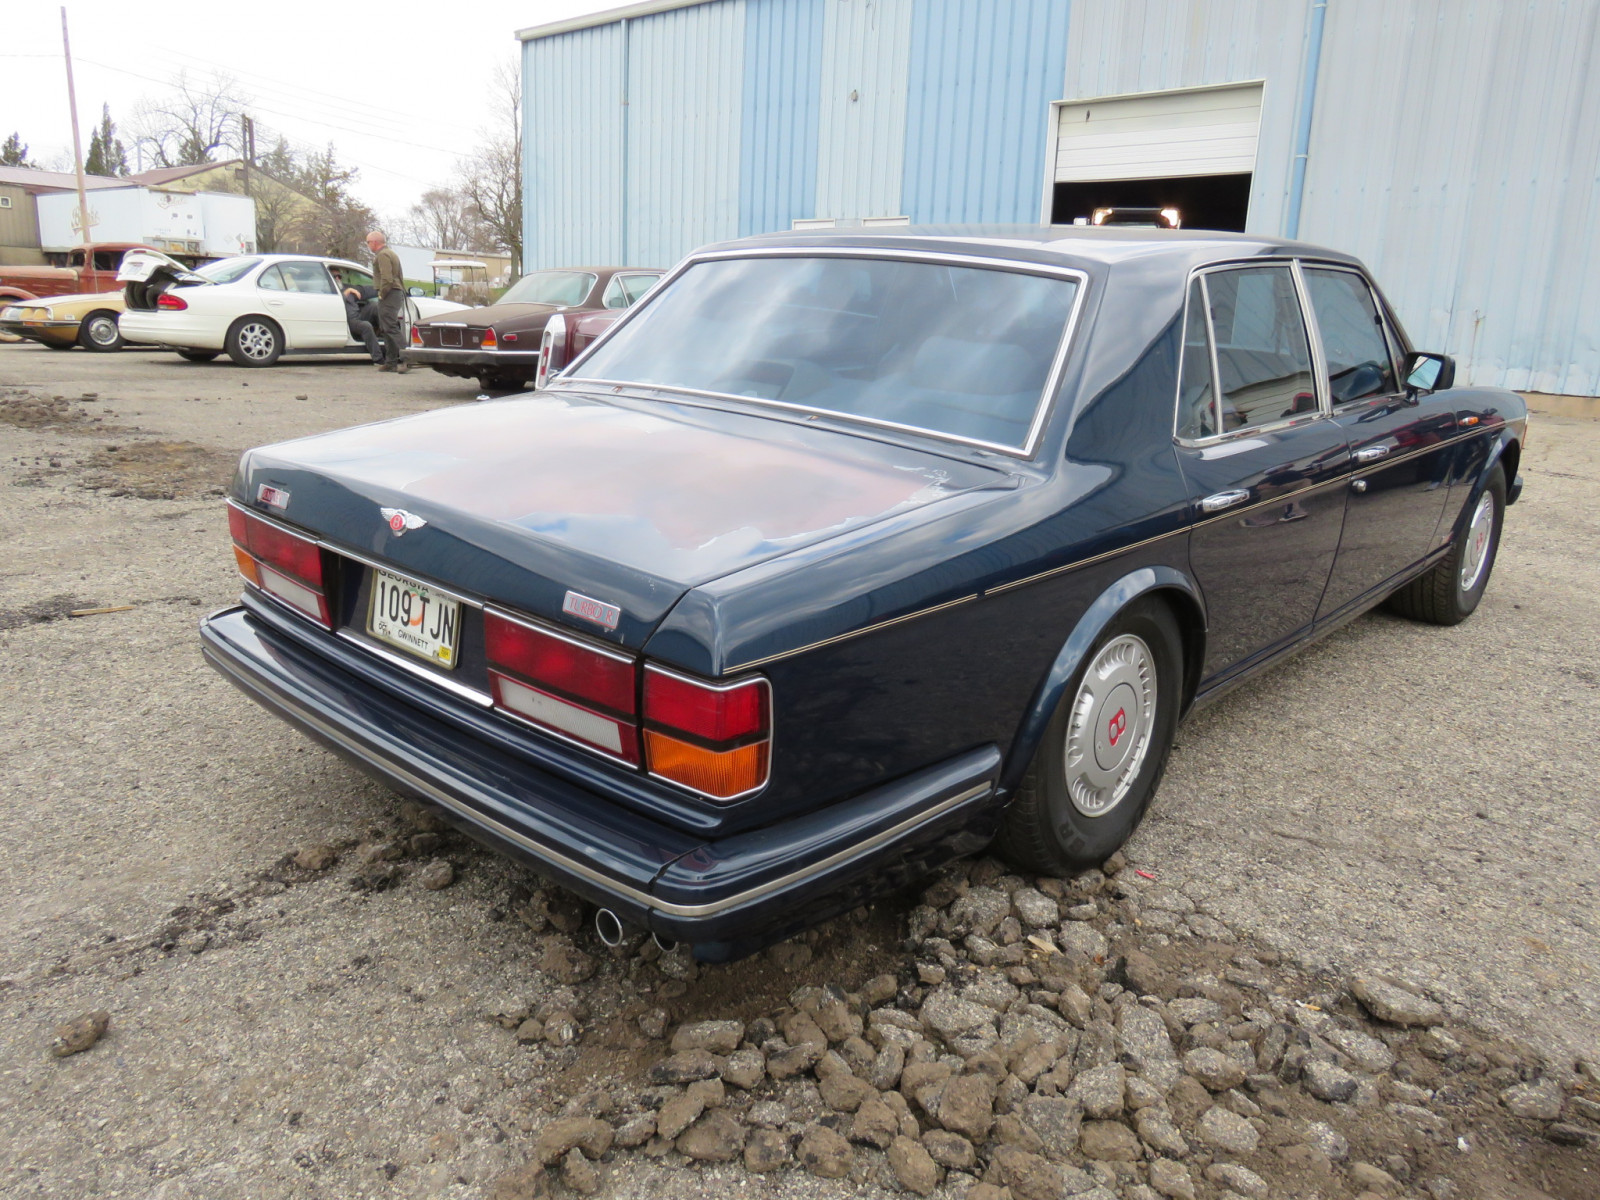 1988 Bentley Turbo R 4dr Sedan - Image 6